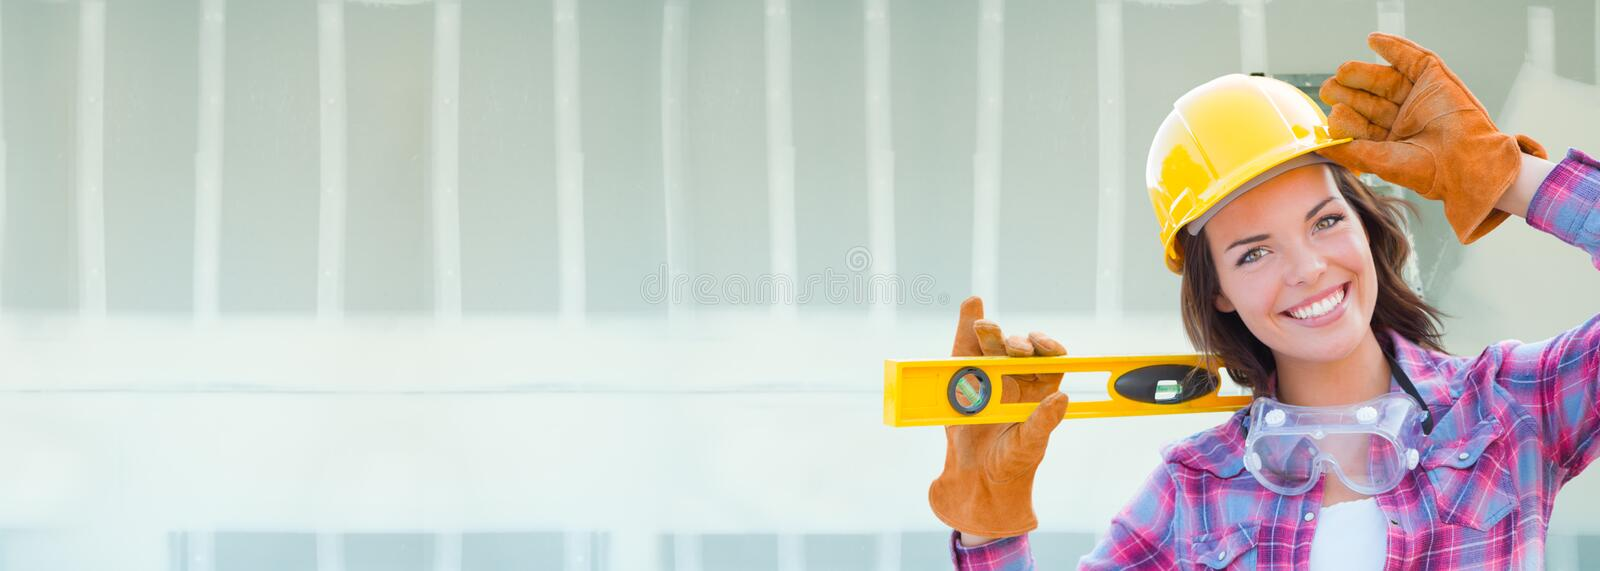 Female Contractor Wearing Hard Hat Against Drywall Banner Background with Ladder royalty free stock images